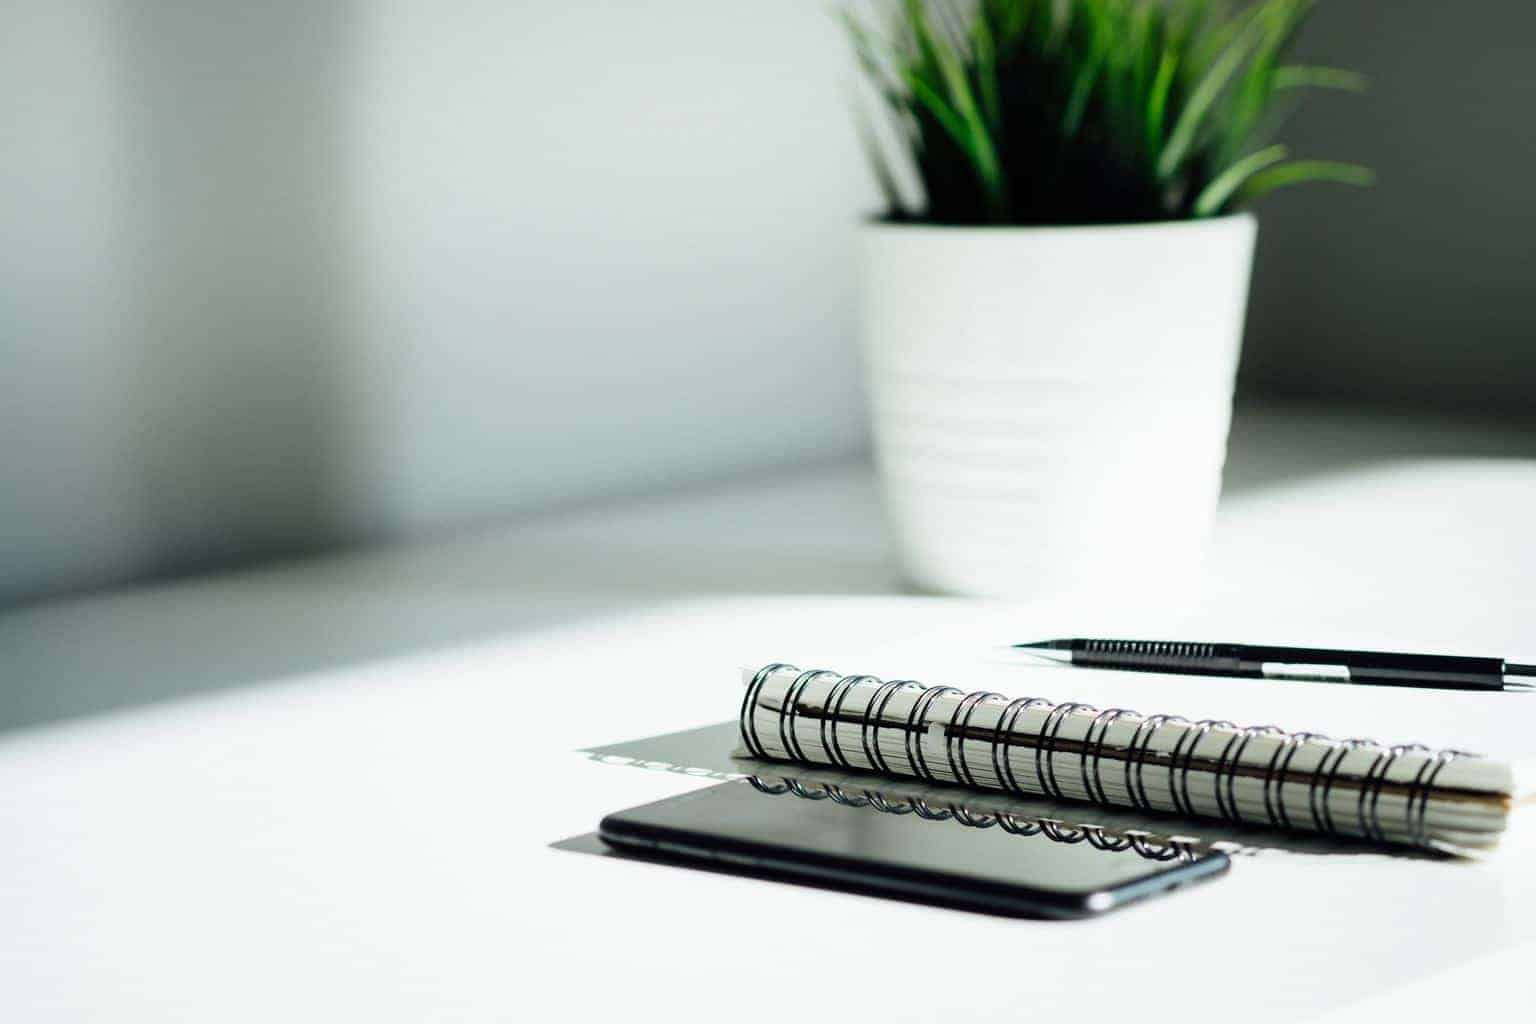 pen, notebook, and smartphone on a white table with plant